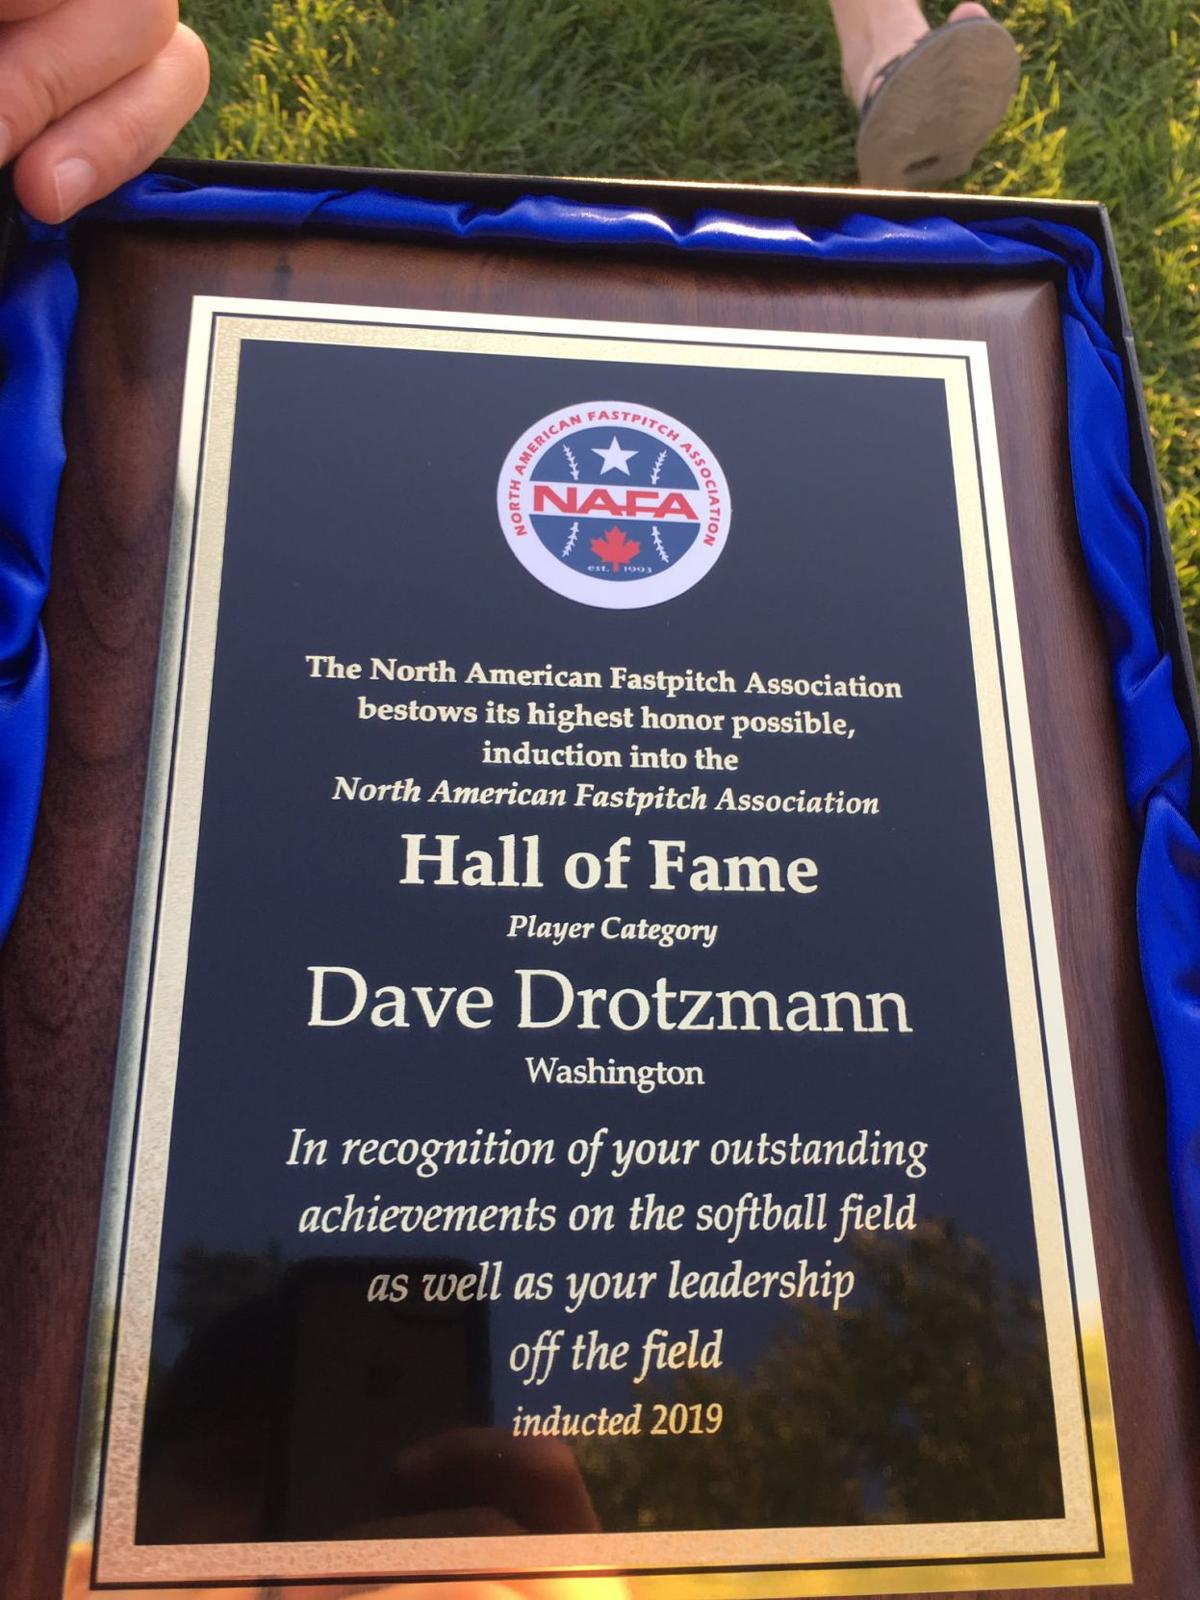 Mayor of Hermiston gets inducted into the Fastpitch Hall of Fame